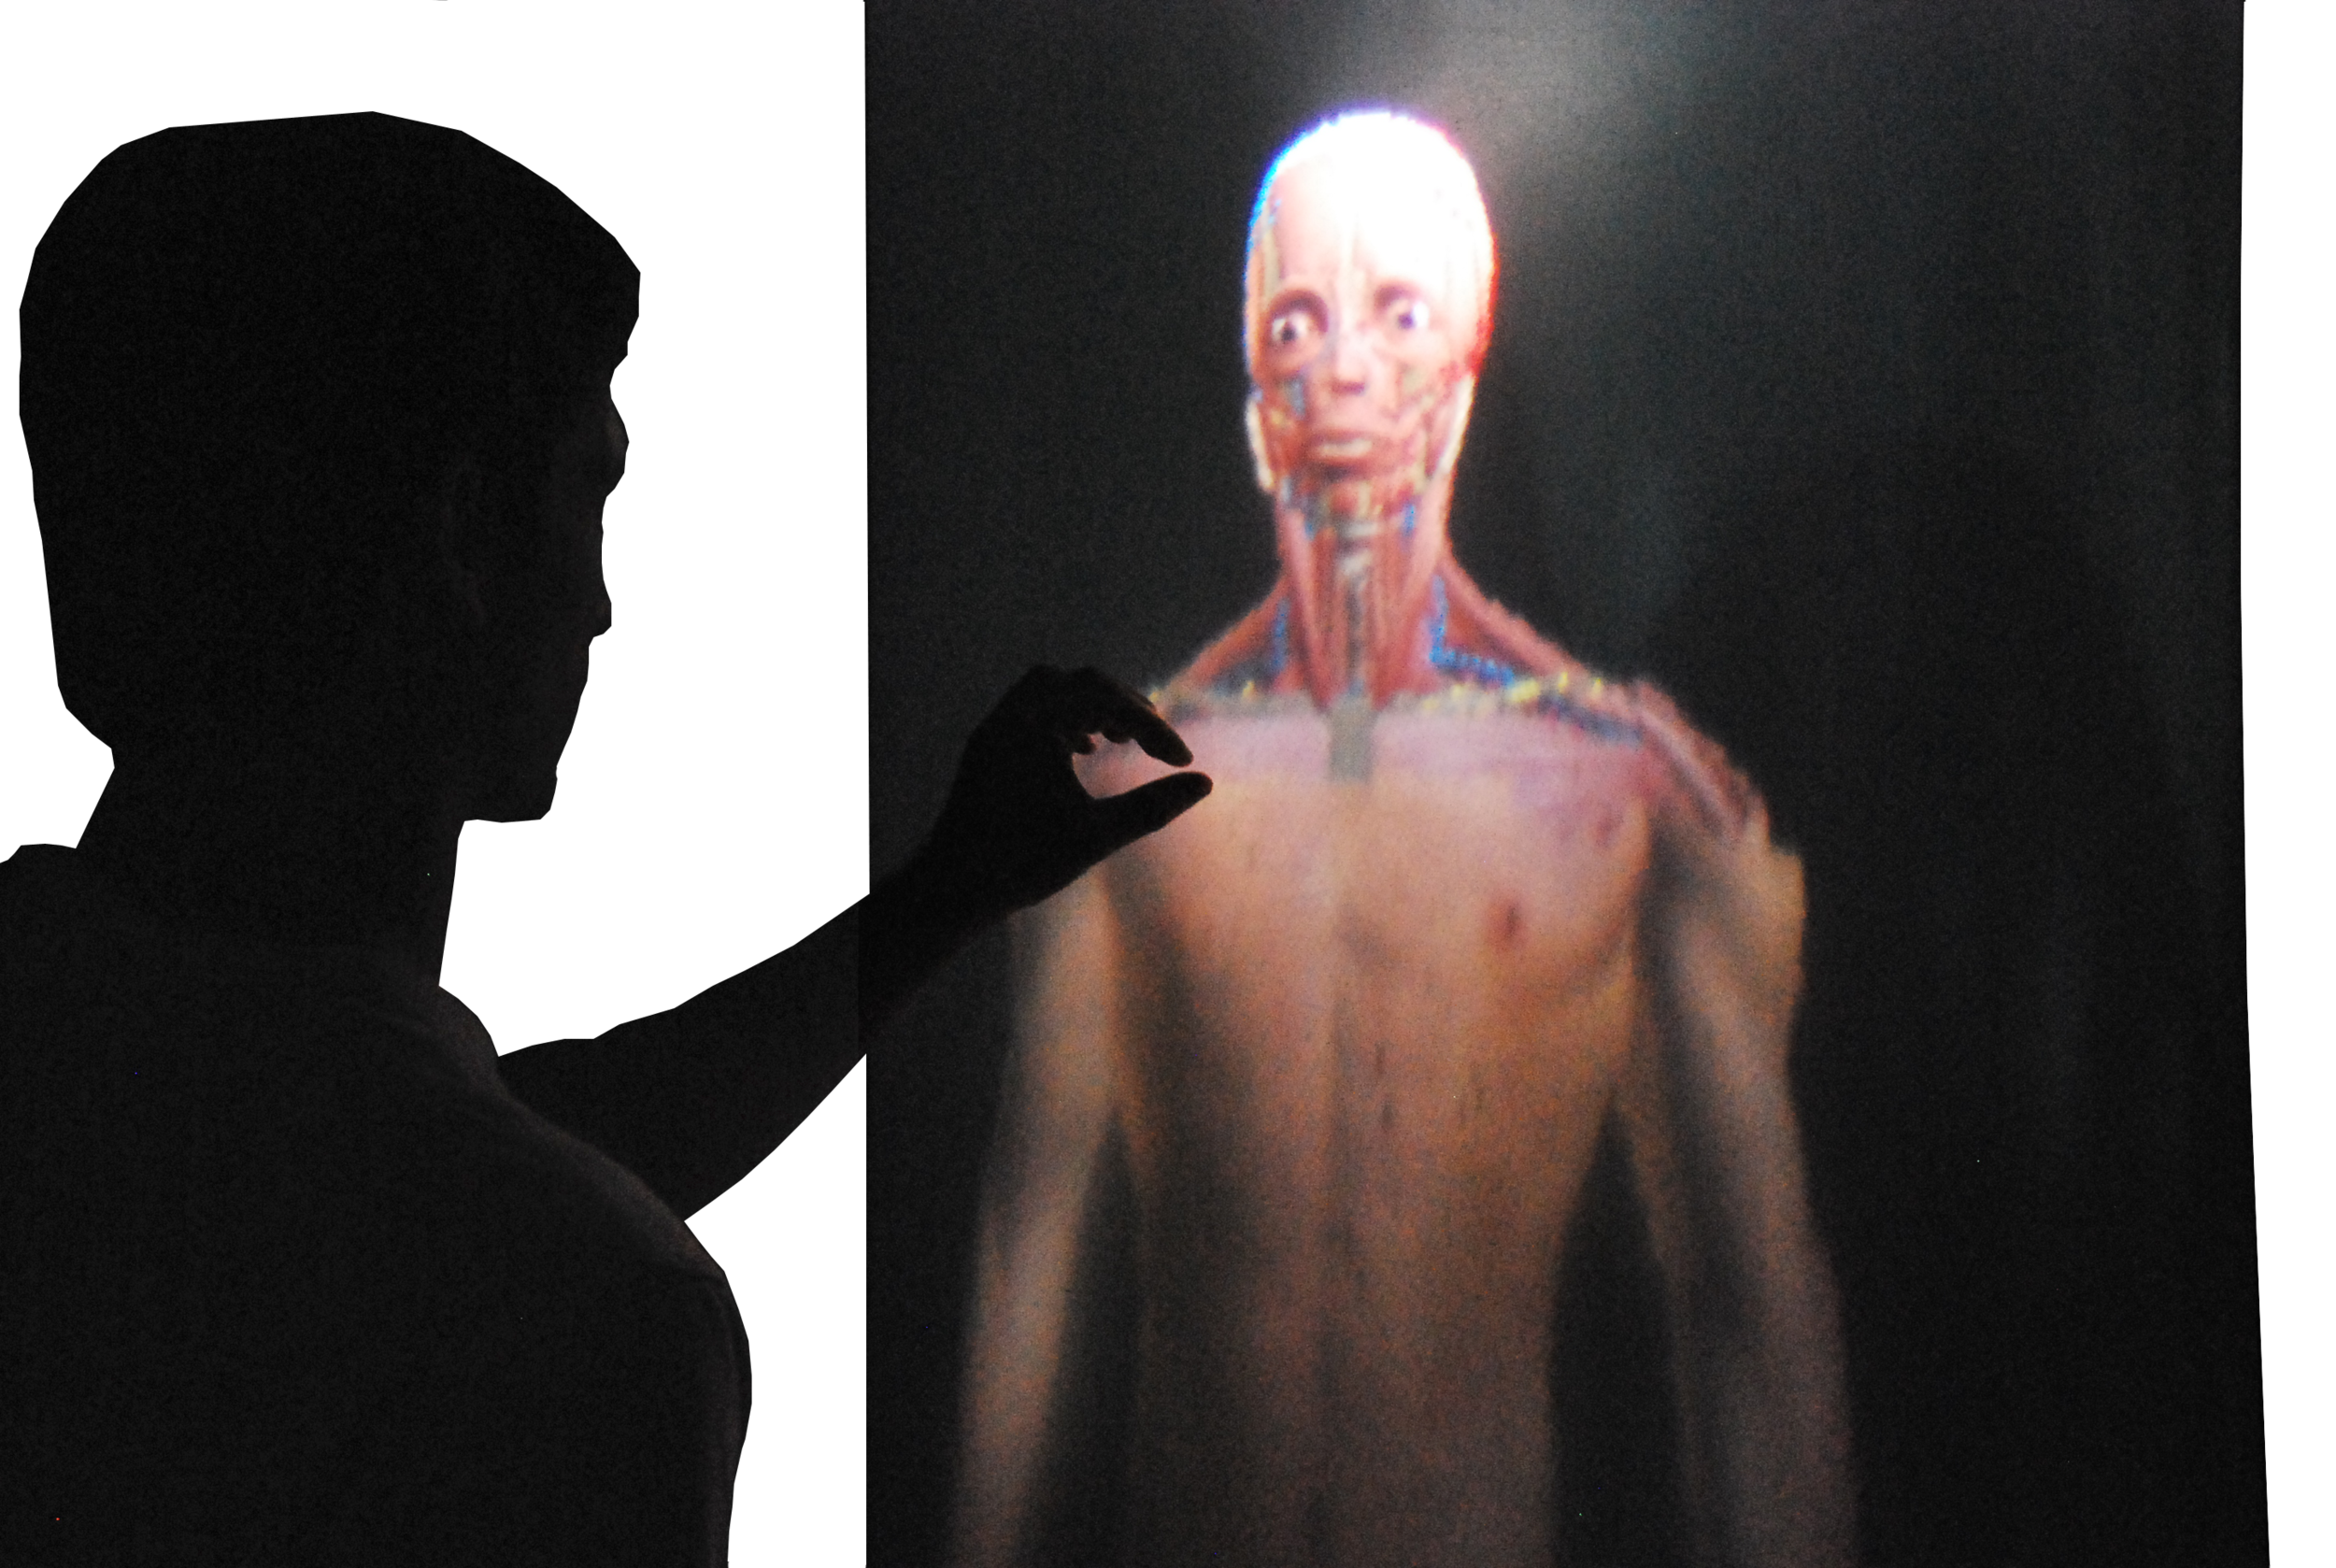 bodipod (2012): remote pinch gesture enlarging anatomical model